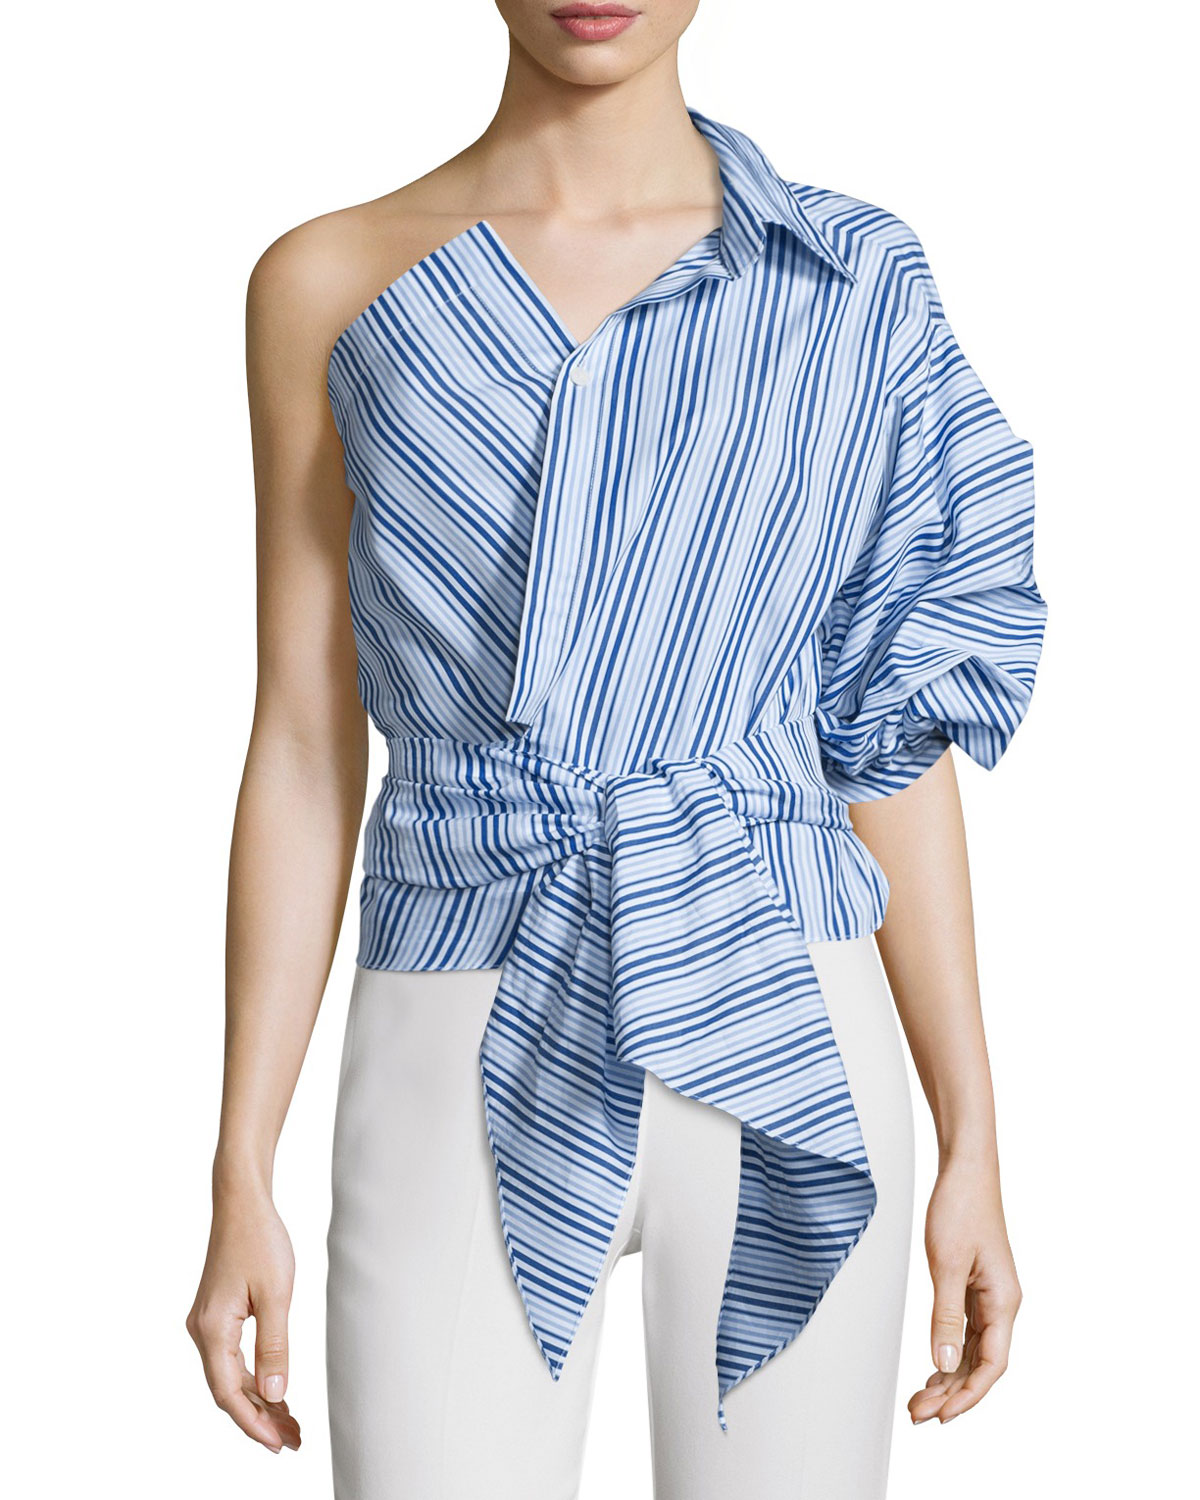 Sherlock Striped One-Sleeve Wrap-Front Top, Blue/White